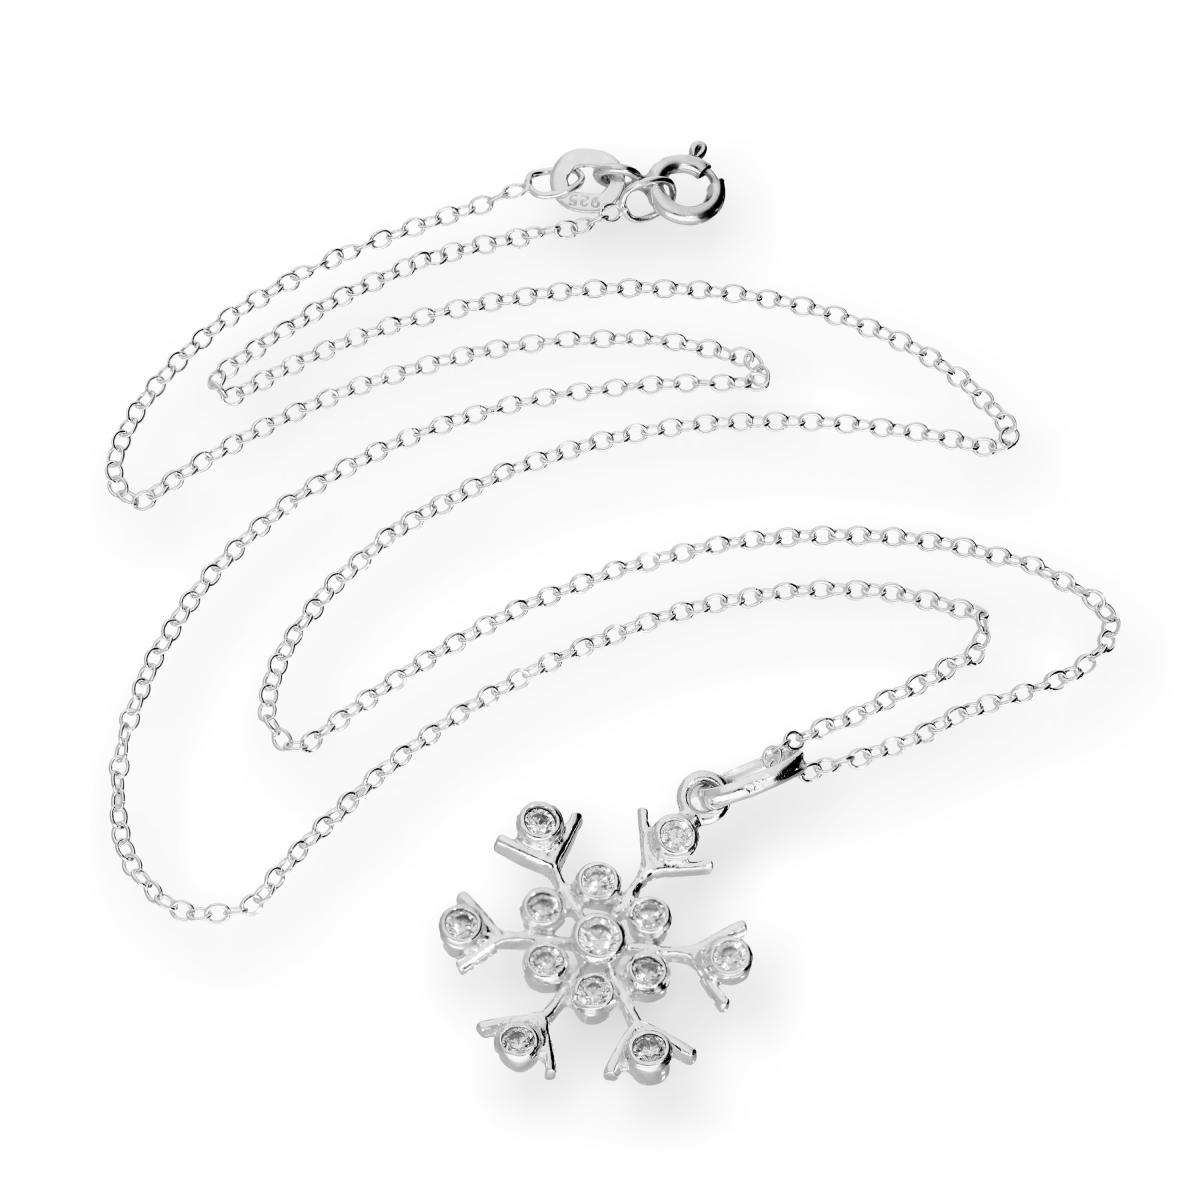 Alterative image for Large Sterling Silver & CZ Crystal Snowflake 18 Inch Necklace